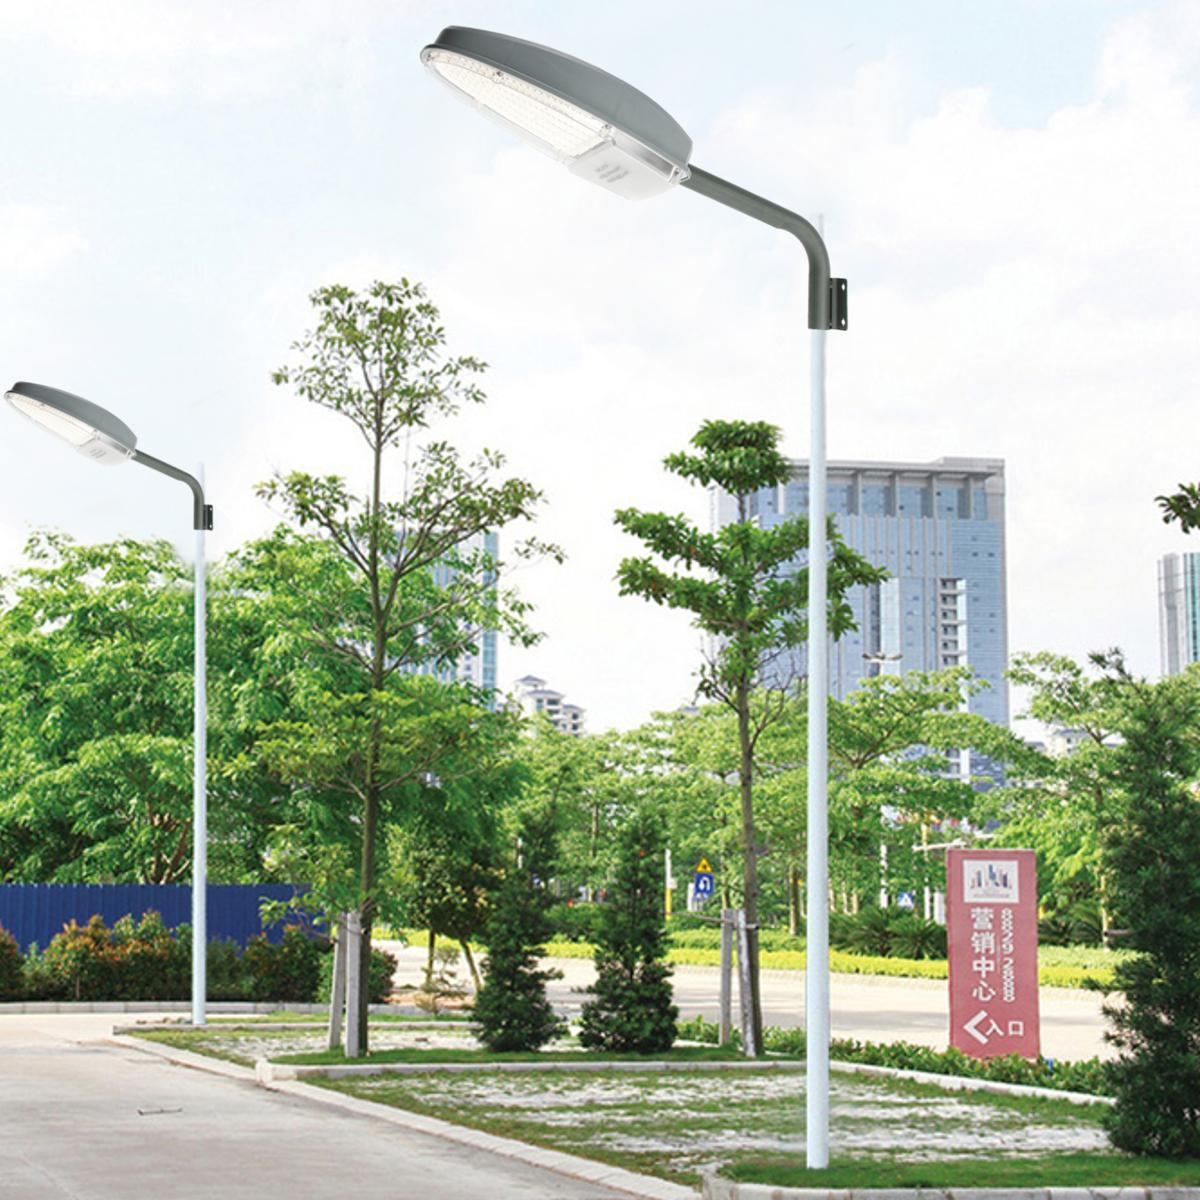 24W Photocontrol Light Sensor Road LED Street Light Floodlight Outdoor Yard LED Garden Lamp With Mounting Arm 2400LM AC85-265V